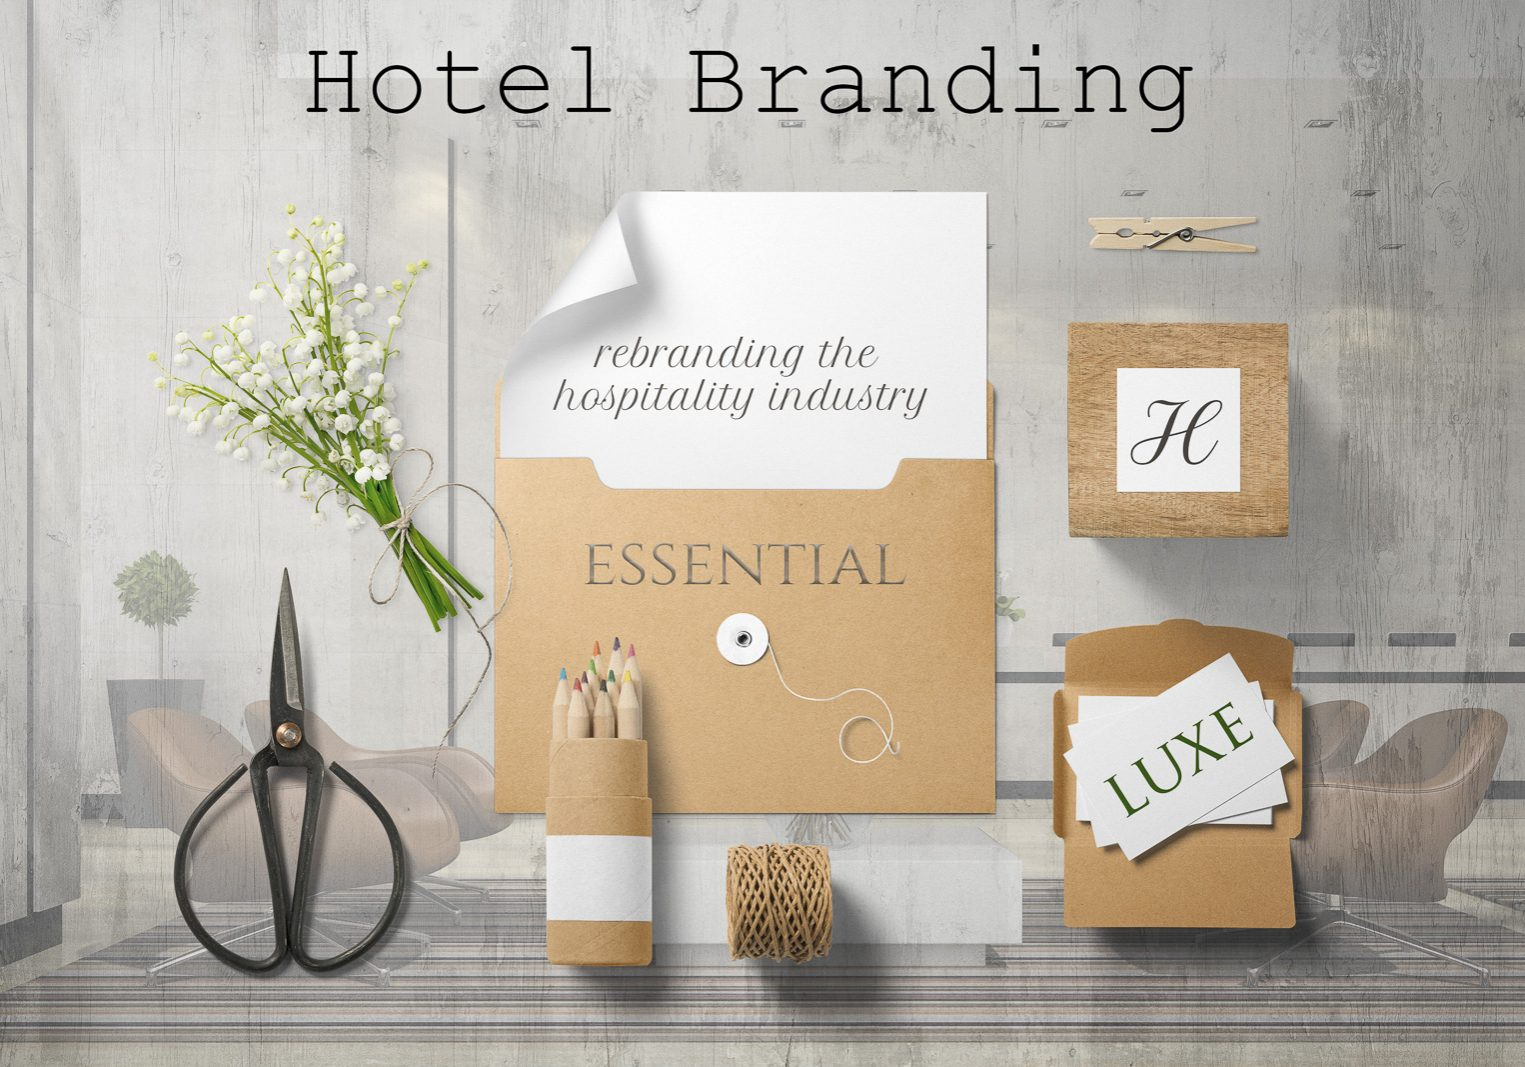 Luxury Marketing Agency Miami, Let our Hotel Marketing experts promote your hotel with digital marketing.